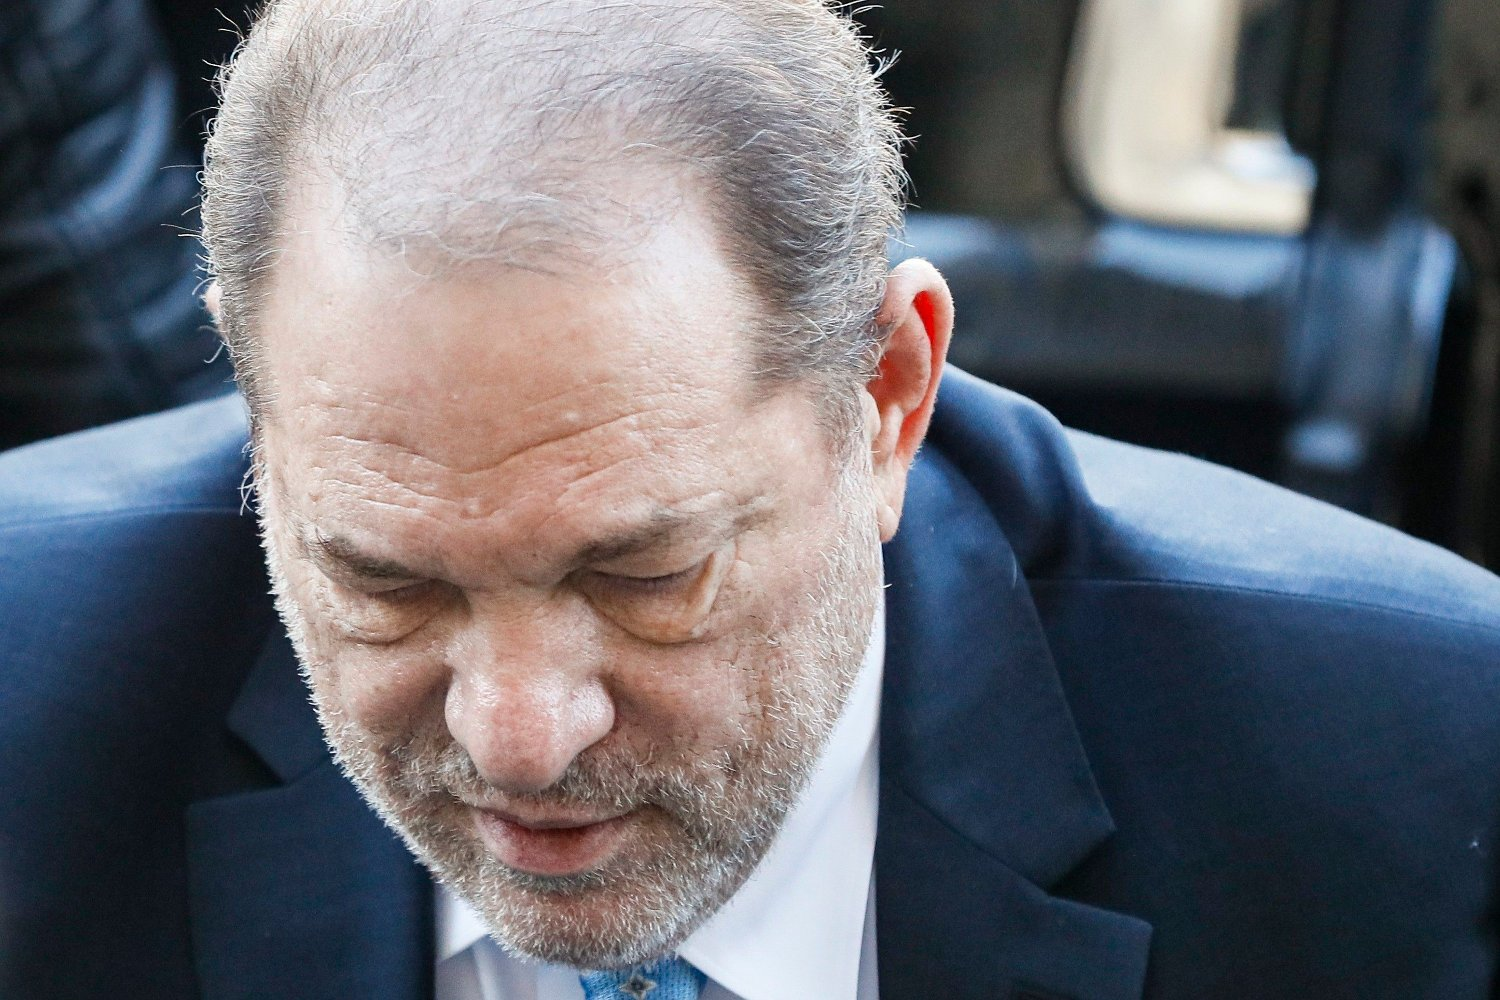 Harvey Weinstein arrives at a Manhattan courthouse for his rape trial, Monday, Feb. 24, 2020, in New York. A jury convicted the Hollywood mogul of rape and sexual assault. The jury found him not guilty of the most serious charge, predatory sexual assault, which could have resulted in a life sentence.